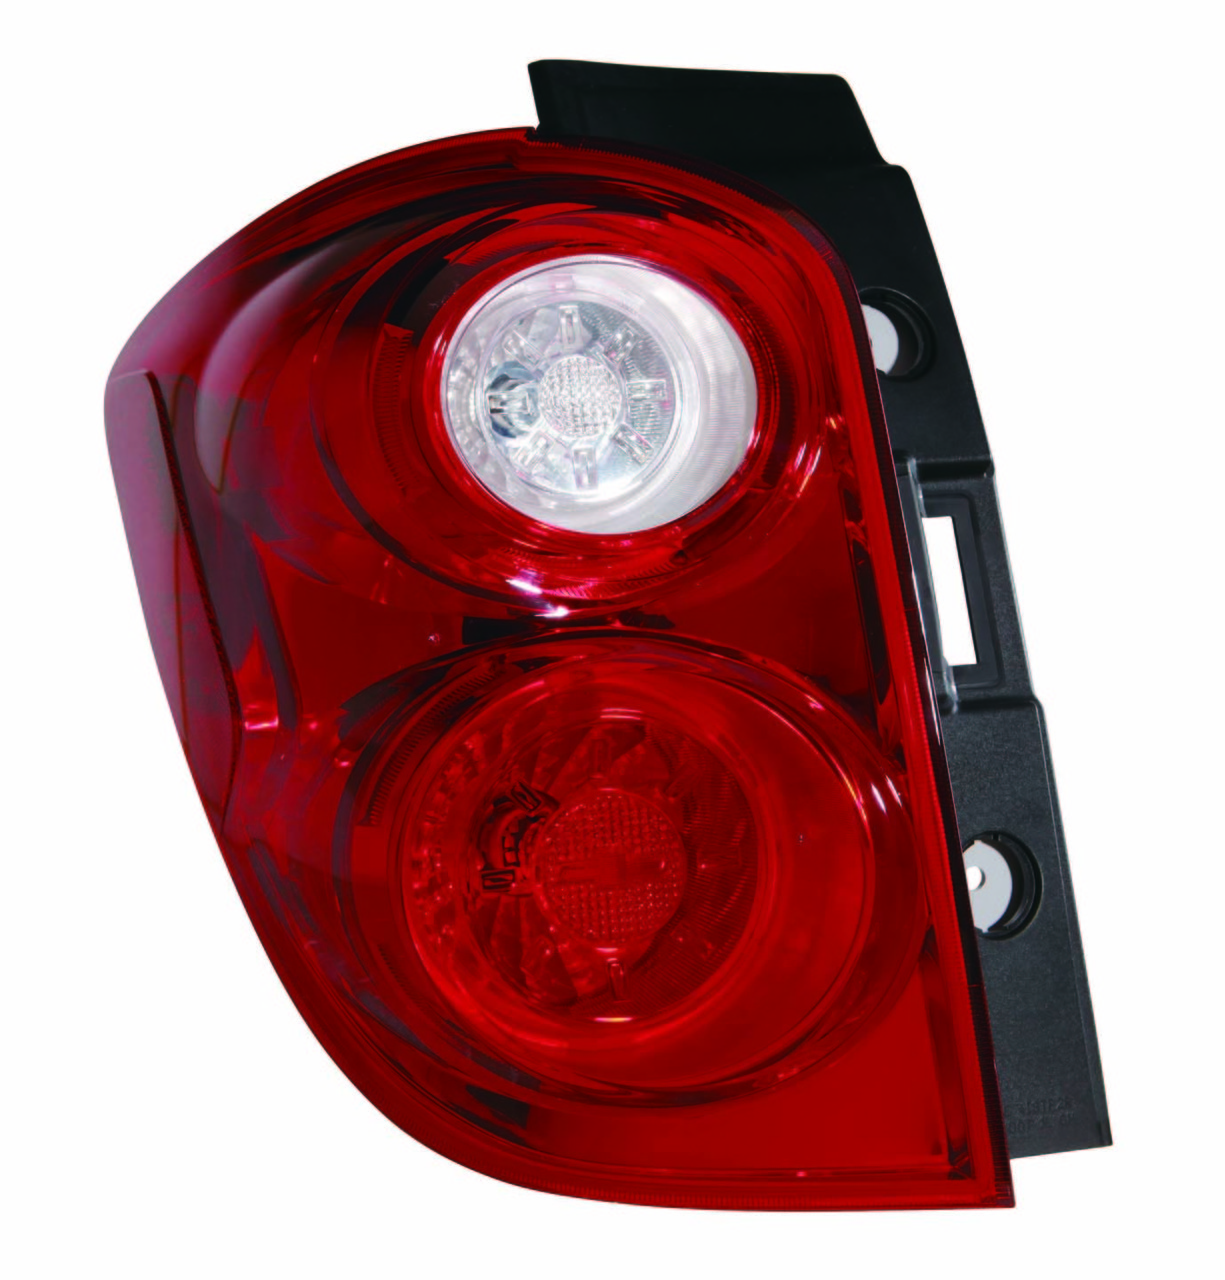 Chevrolet Equinox 2010 2011 2012 2013 2014 tail light left driver